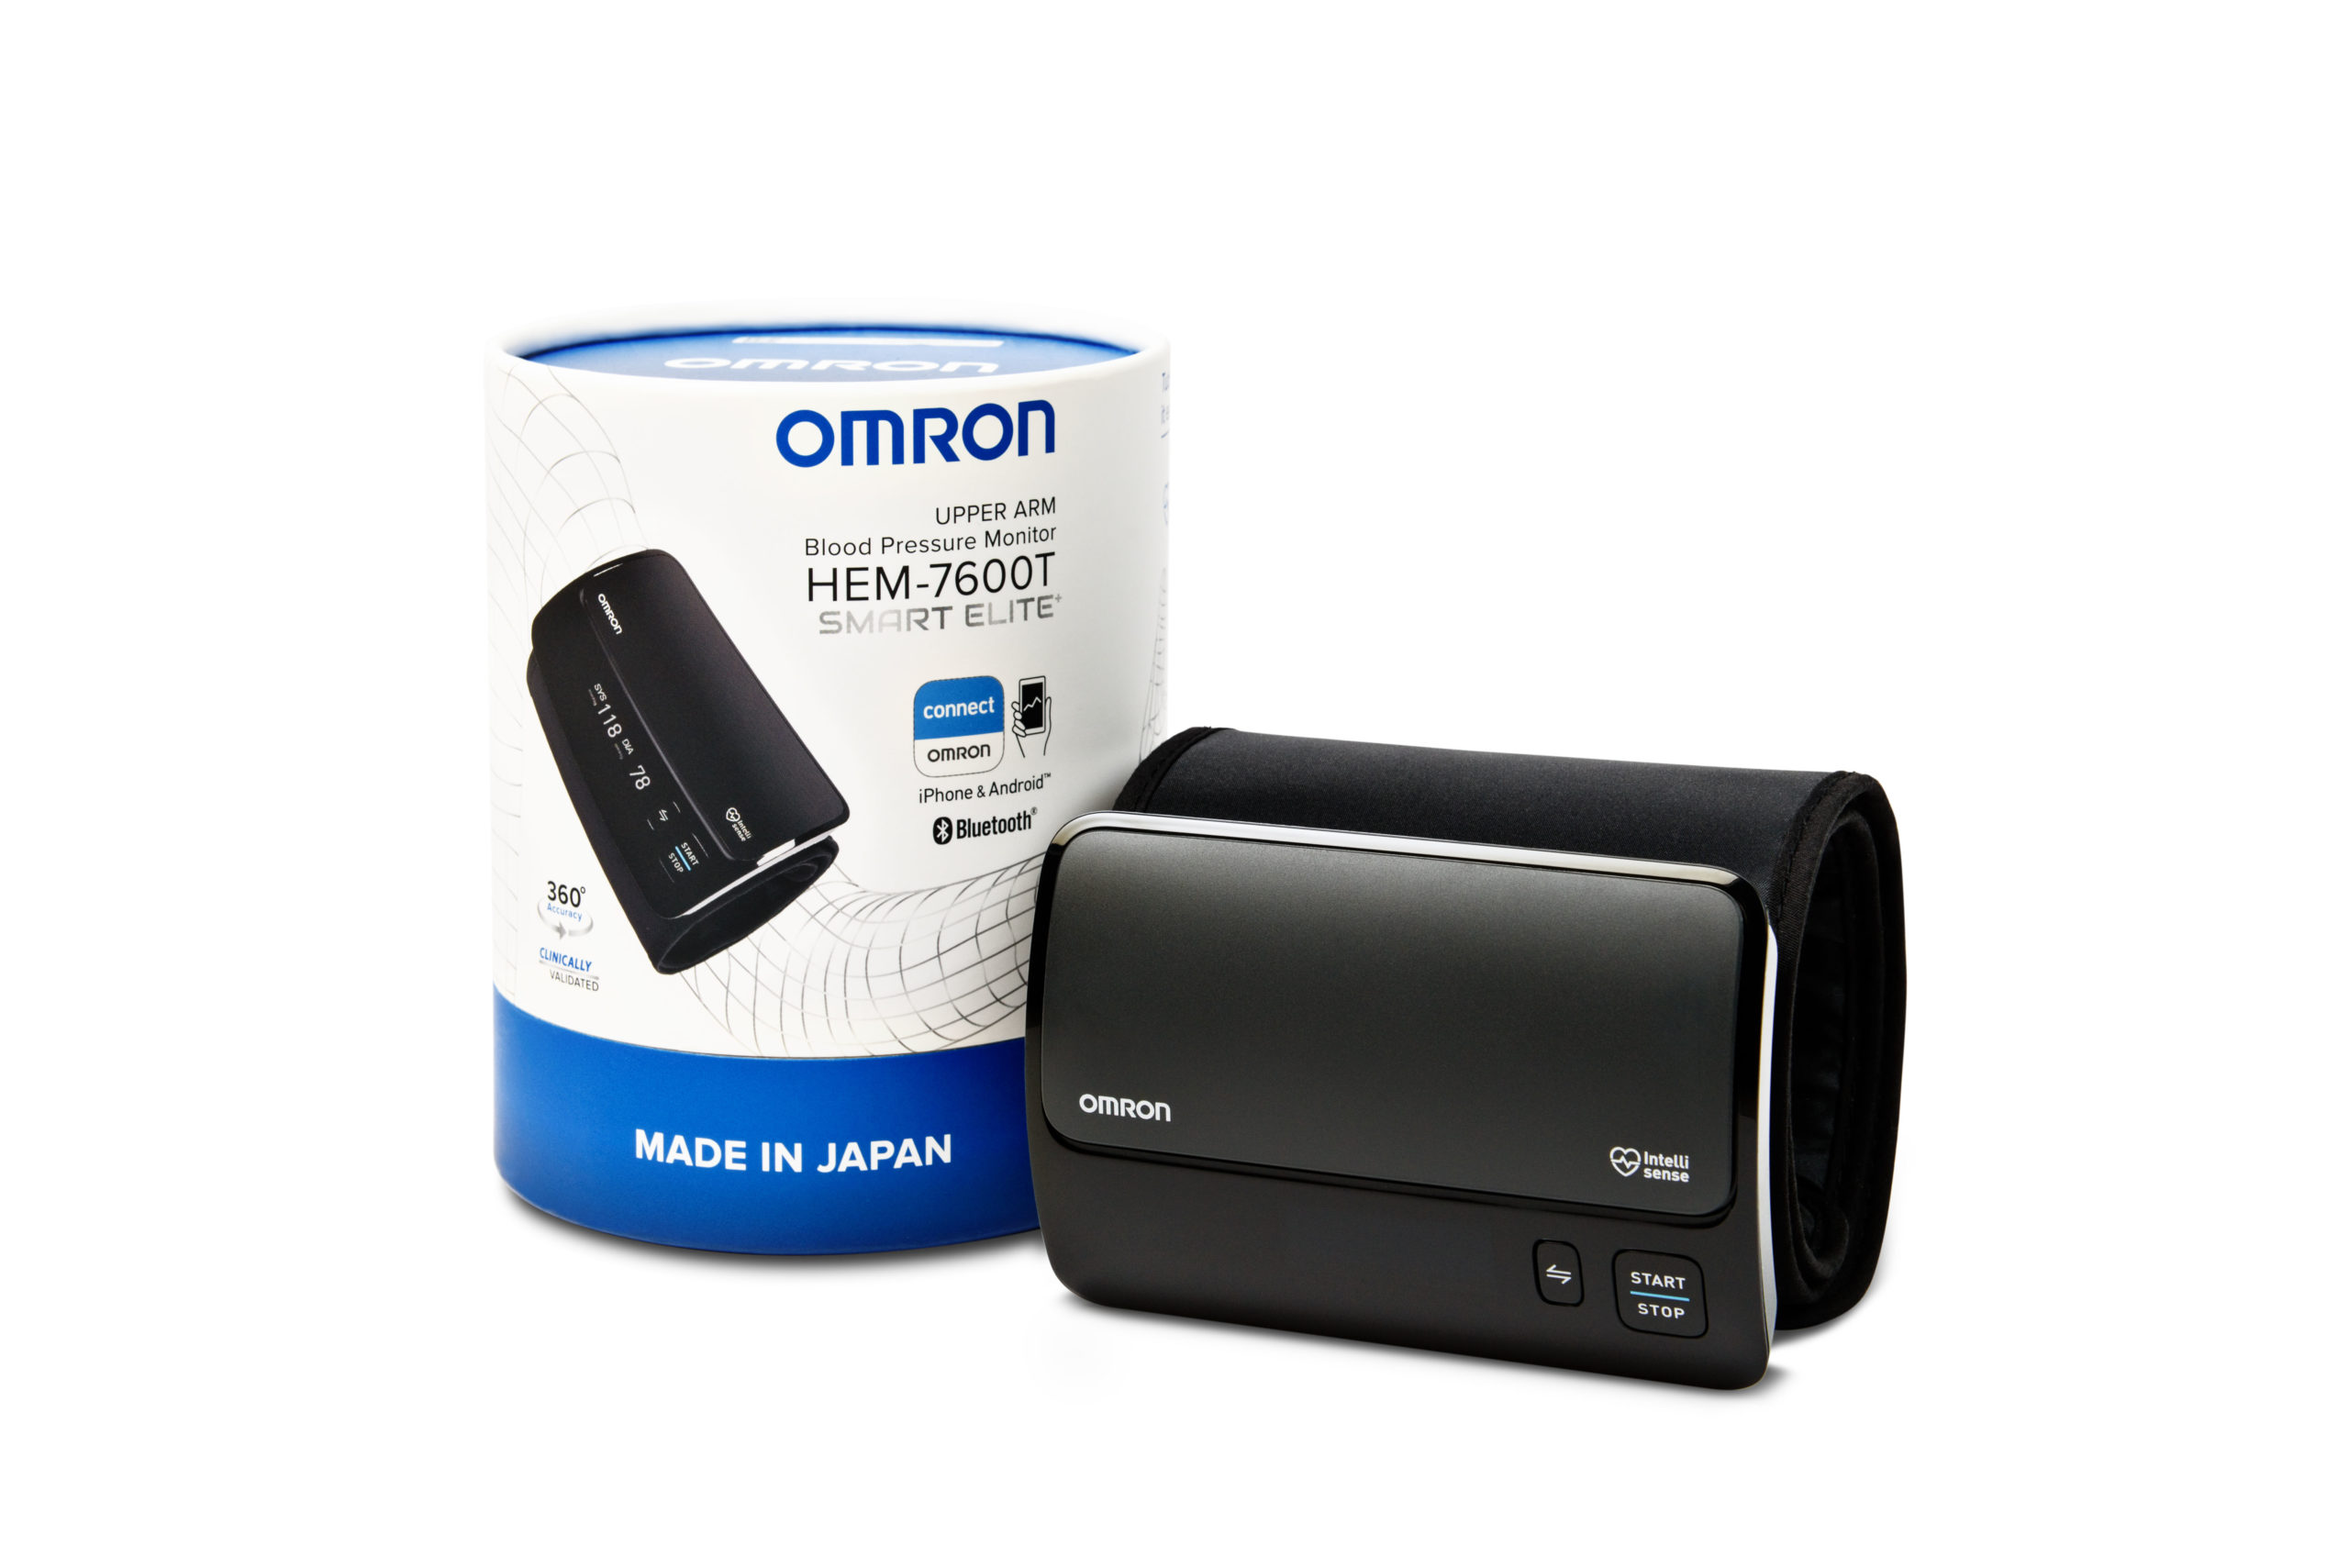 OMRON makes home blood pressure monitoring easier with connectivity lineup